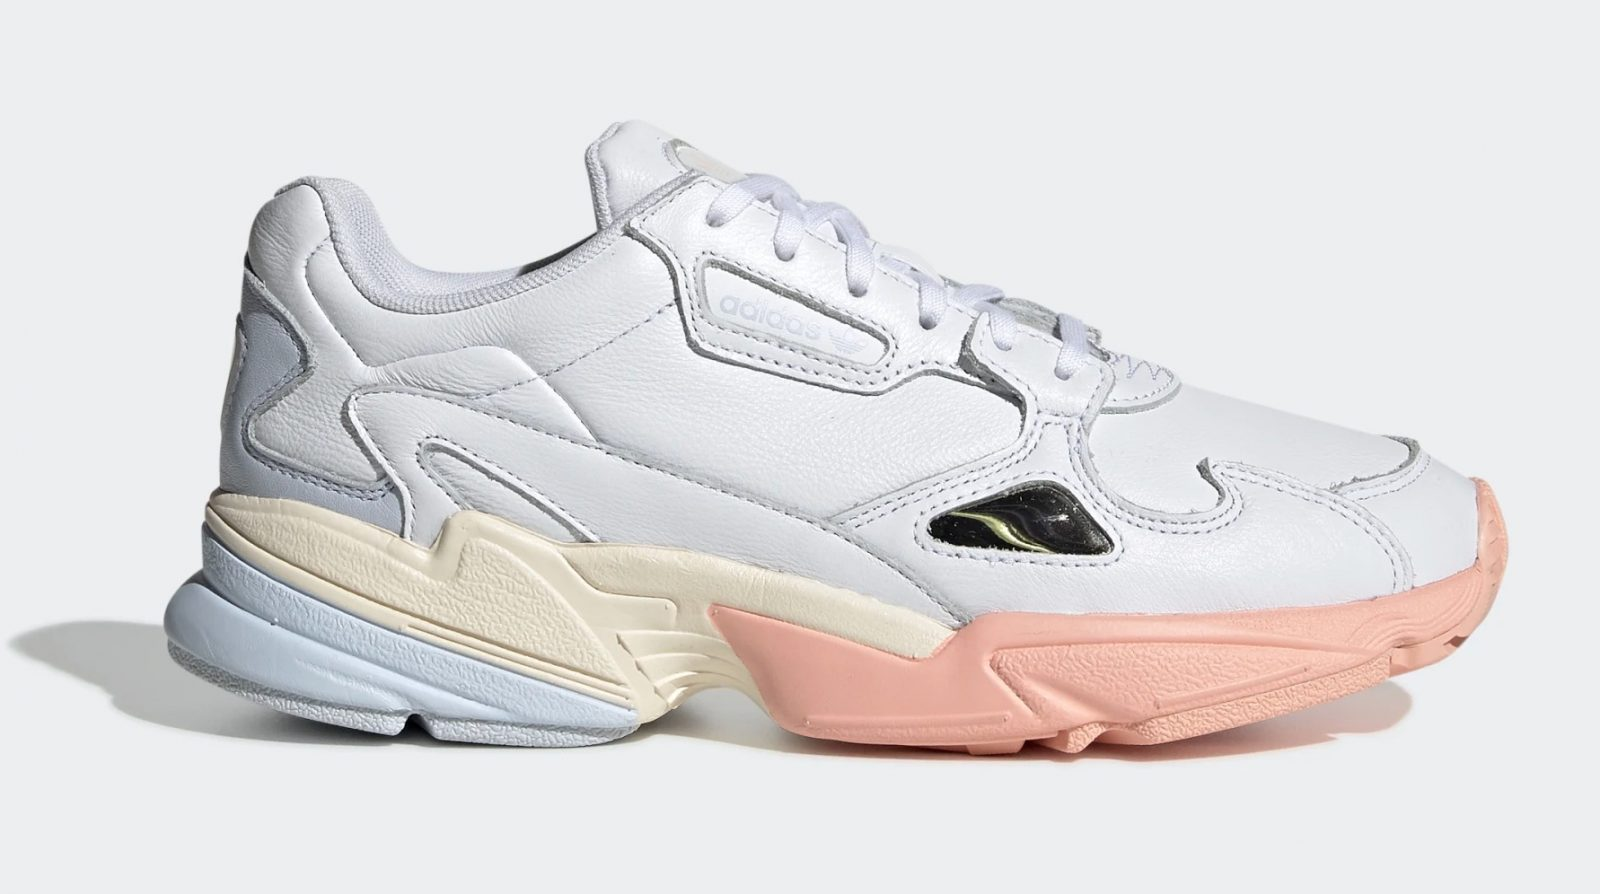 We Are Loving The Pastel Hues On This New adidas Falcon side